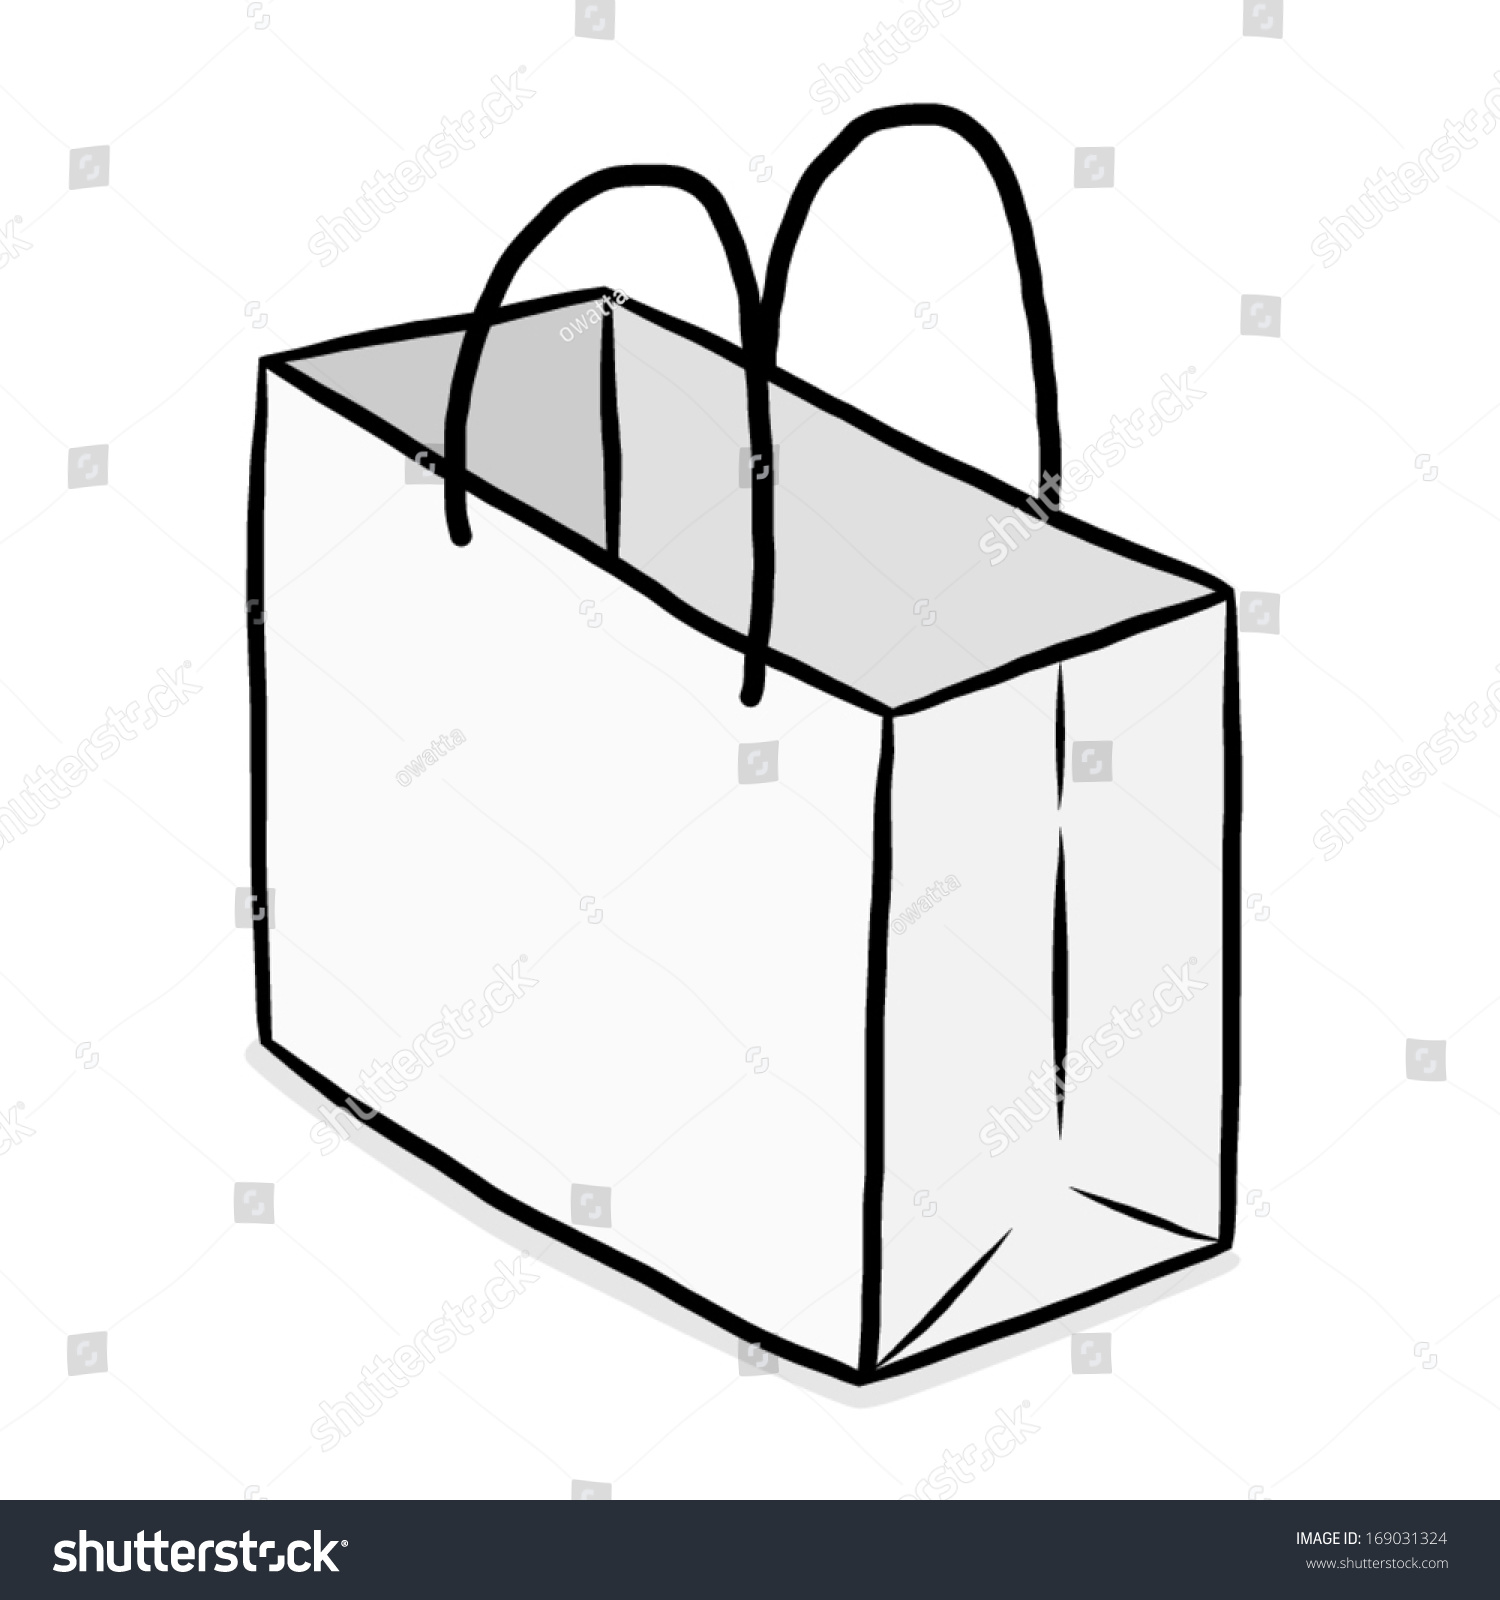 White Paper Bag Cartoon Vector Illustration Stock Vector ...White Paper Bag Vector